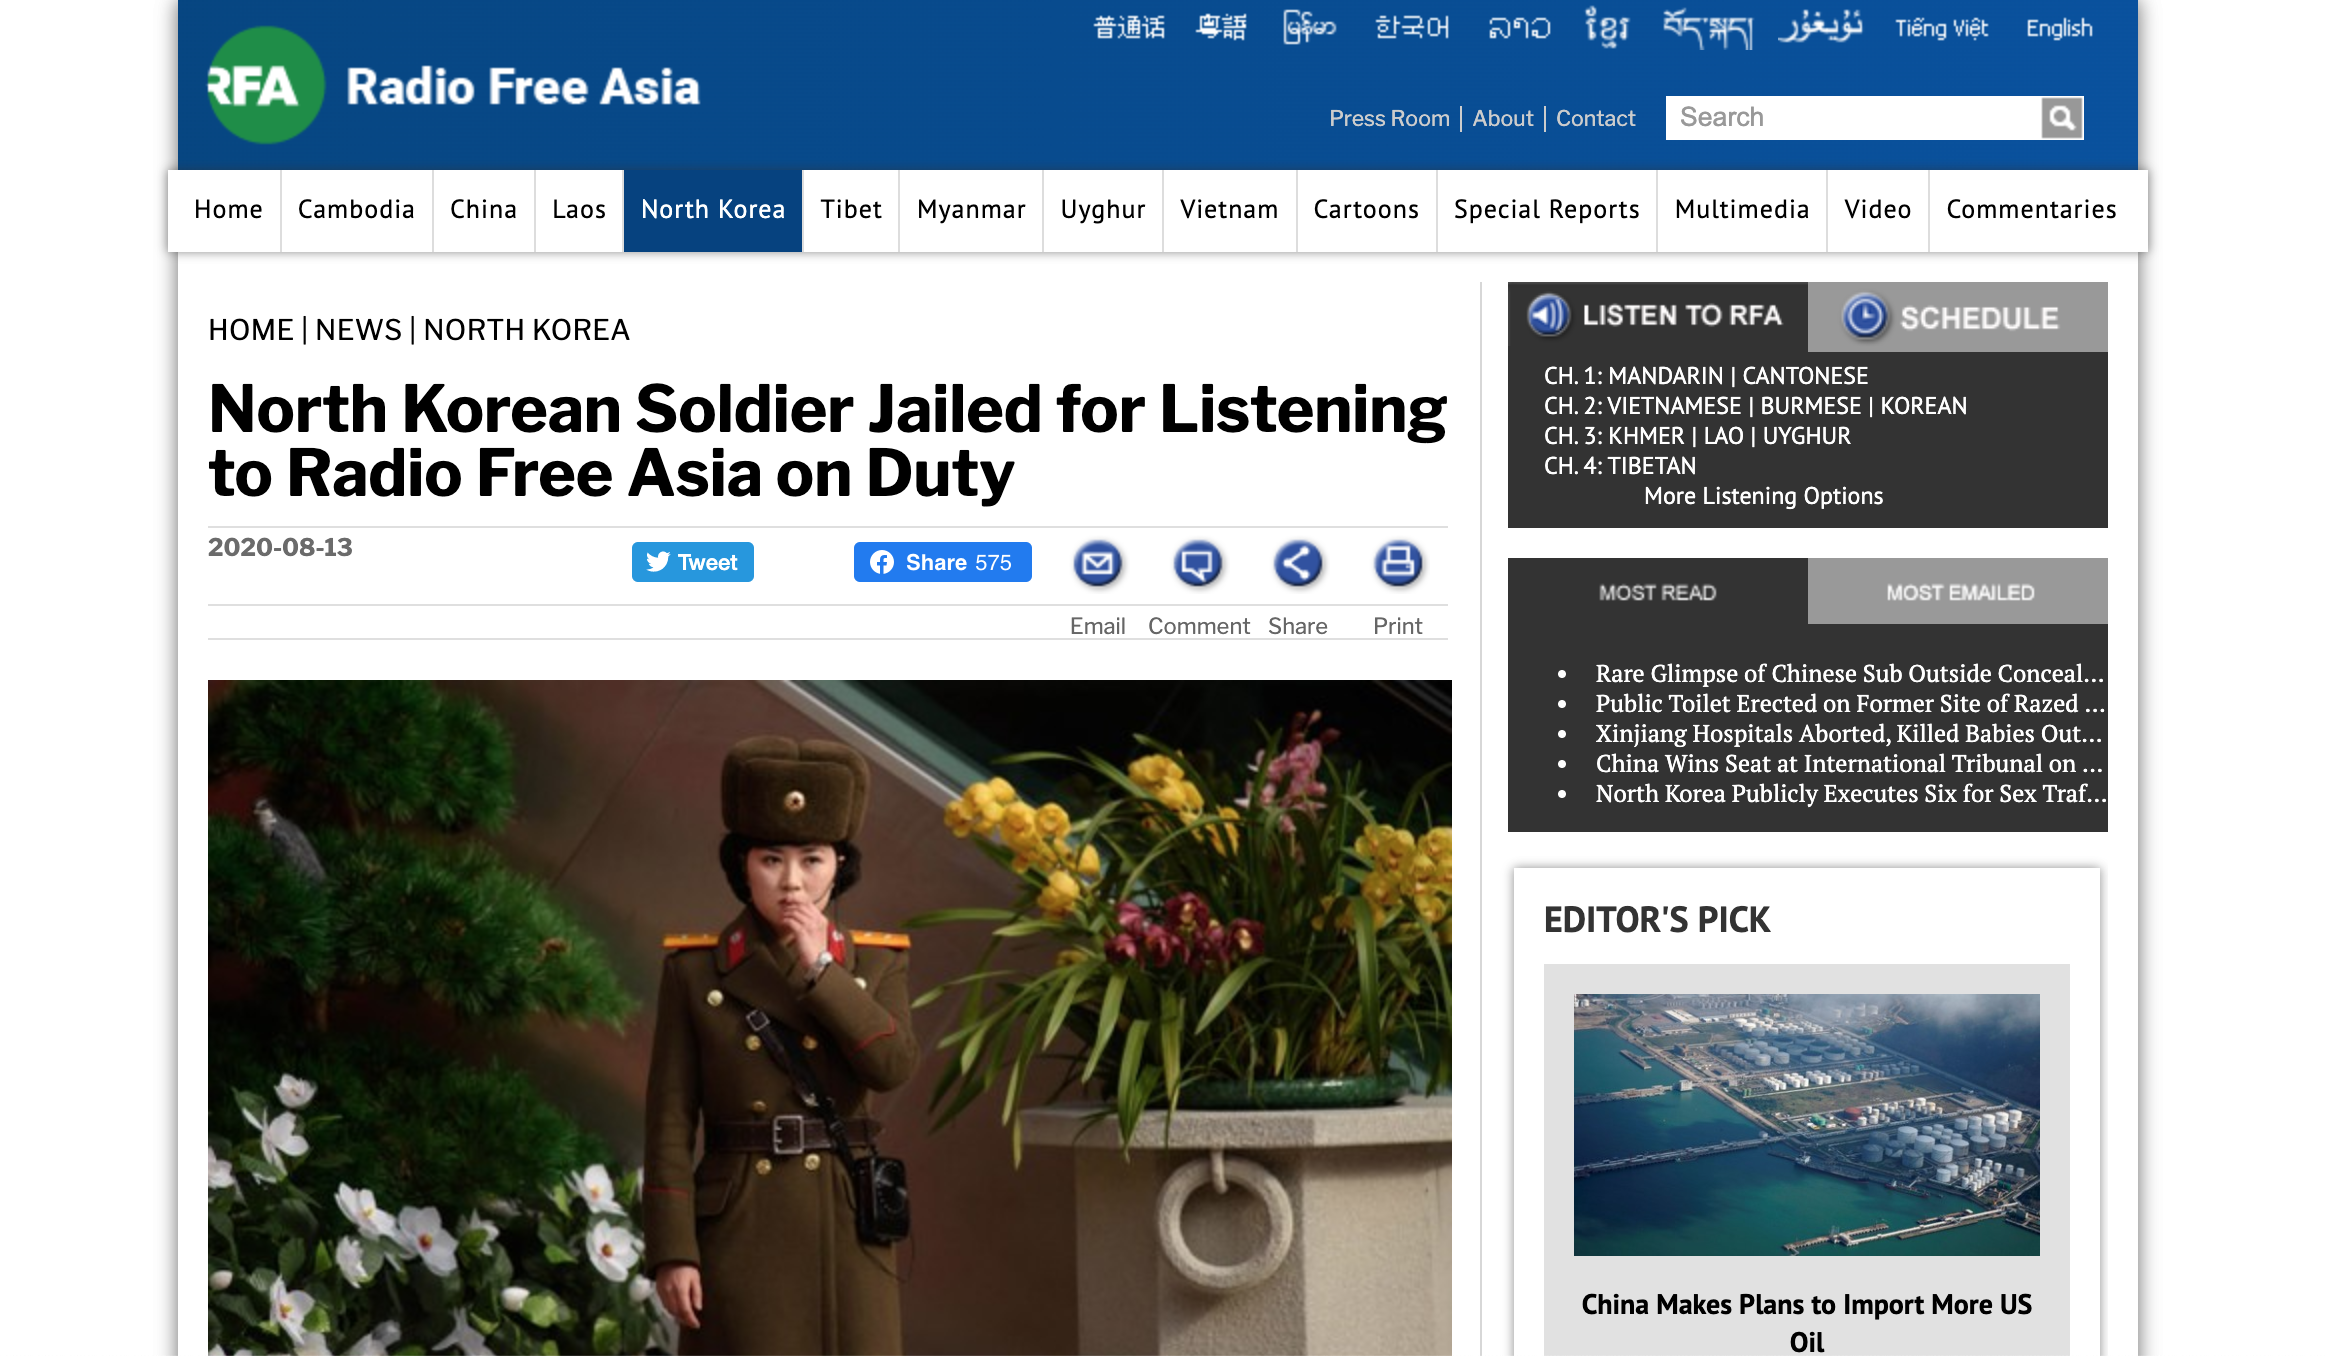 North Korean soldier jailed for listening to RFA